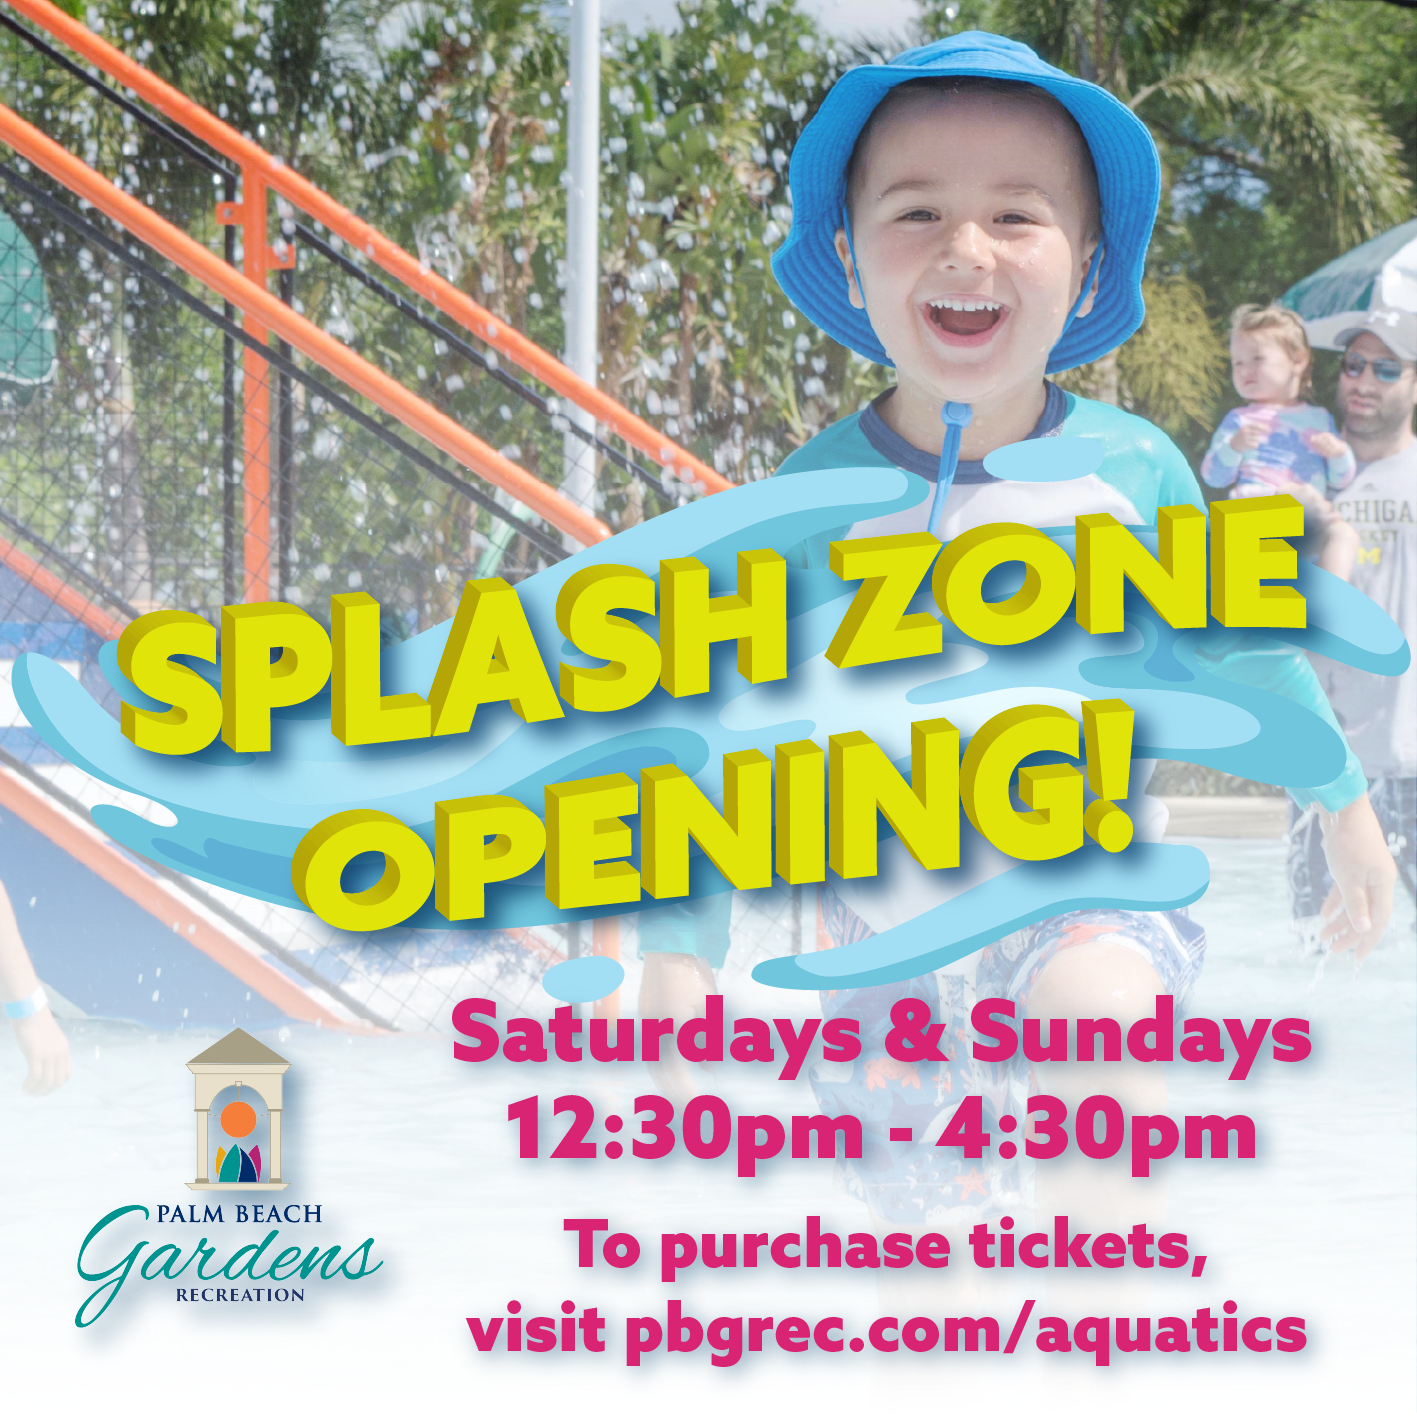 Splash Zone reopening on Saturdays and Sundays from 12:30 p.m. to 4:30 p.m. starting September 12th.